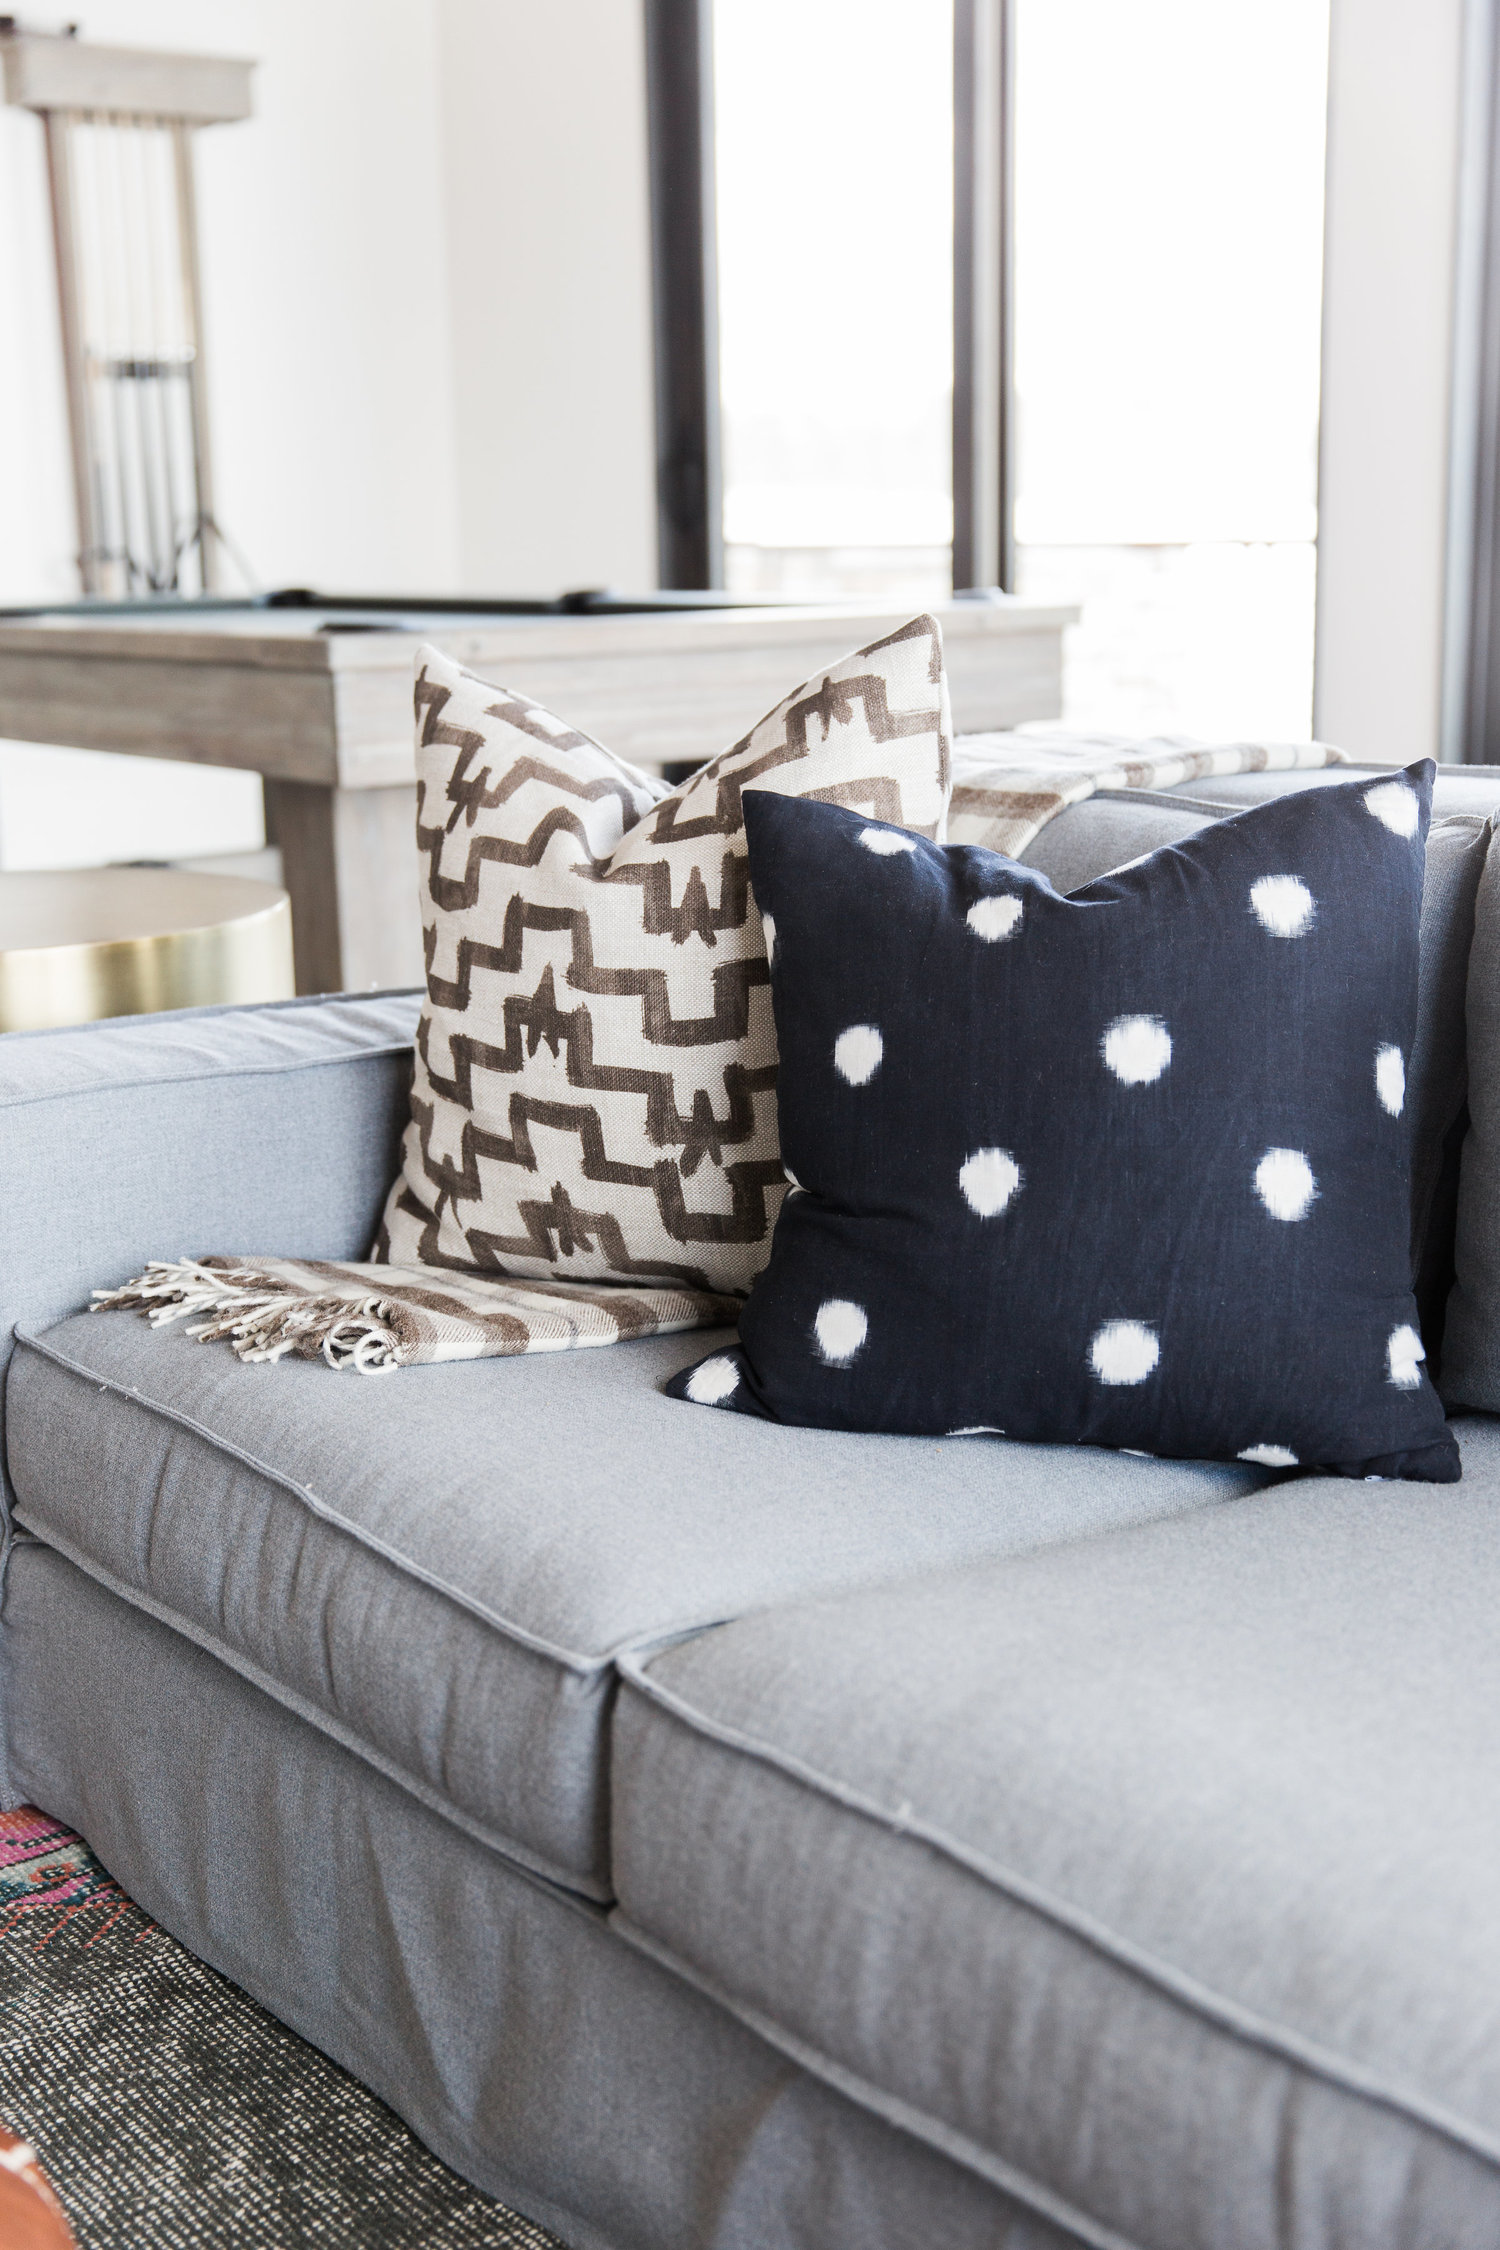 Decorative pillows on grey couch